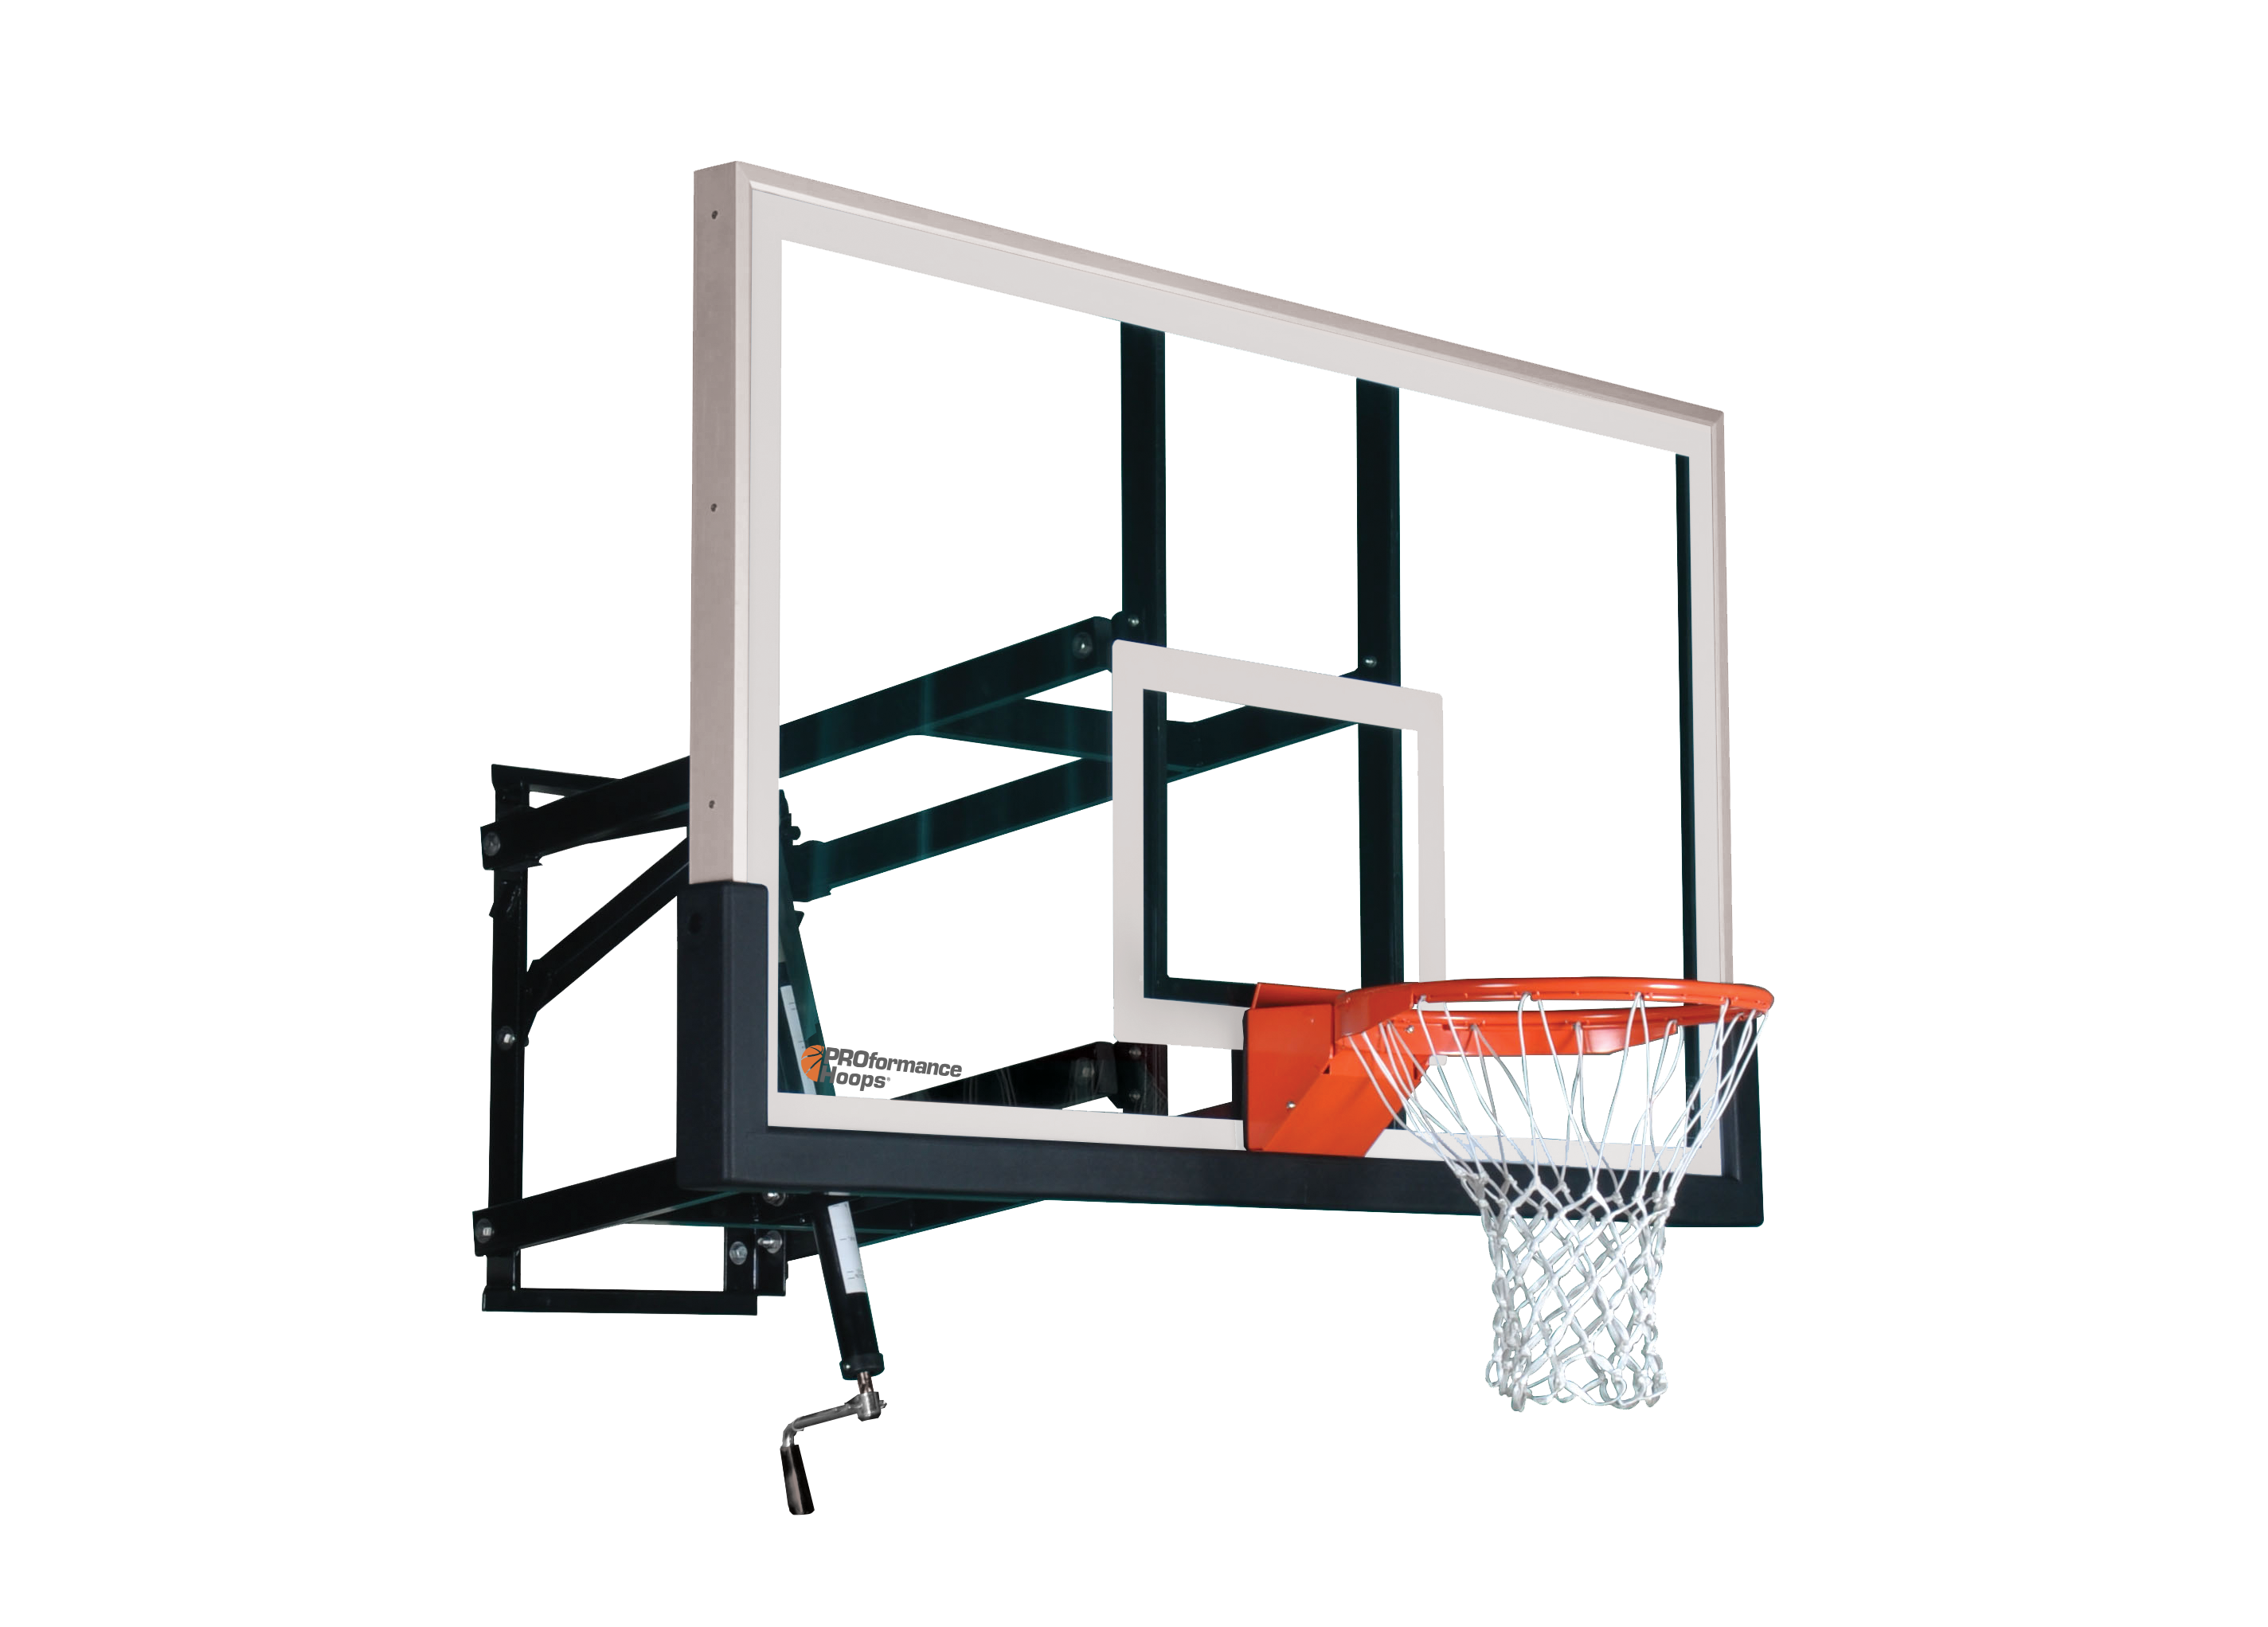 Backboard breaking basketball clipart banner royalty free download Wall Mount Adjustable Basketball Goal - 36